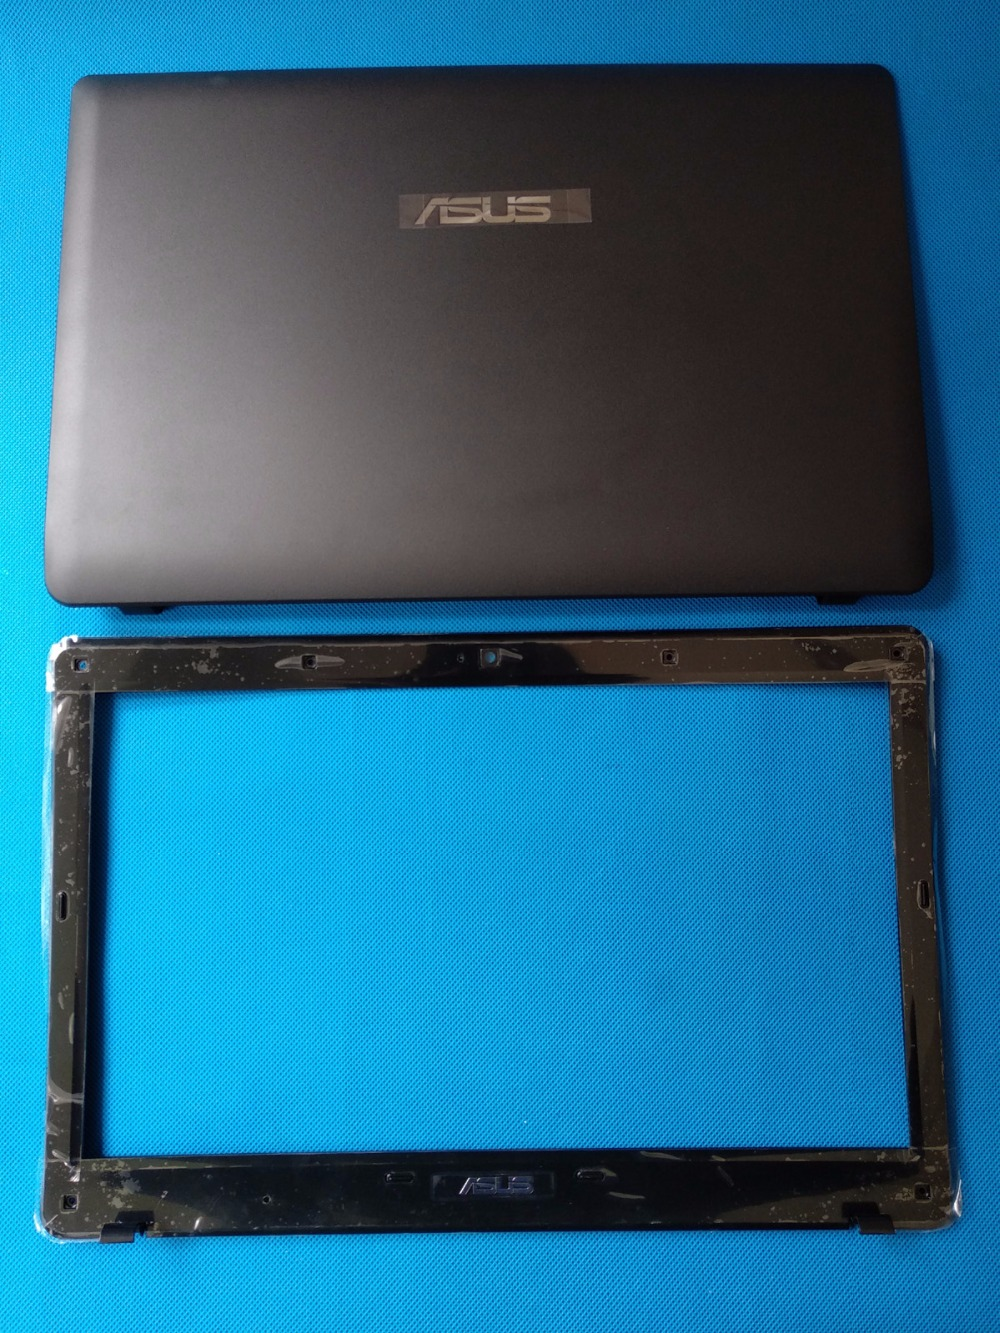 New for Asus K52 K52F K52J A52 X52 K52JR K52JK LCD Rear Case & Front Bezel Lid Cover new for asus k52 k52j k52f k52jr a52 x52 lcd back cover lcd front bezel cover 13n0 gua0a11 13gnxm1ap051 1